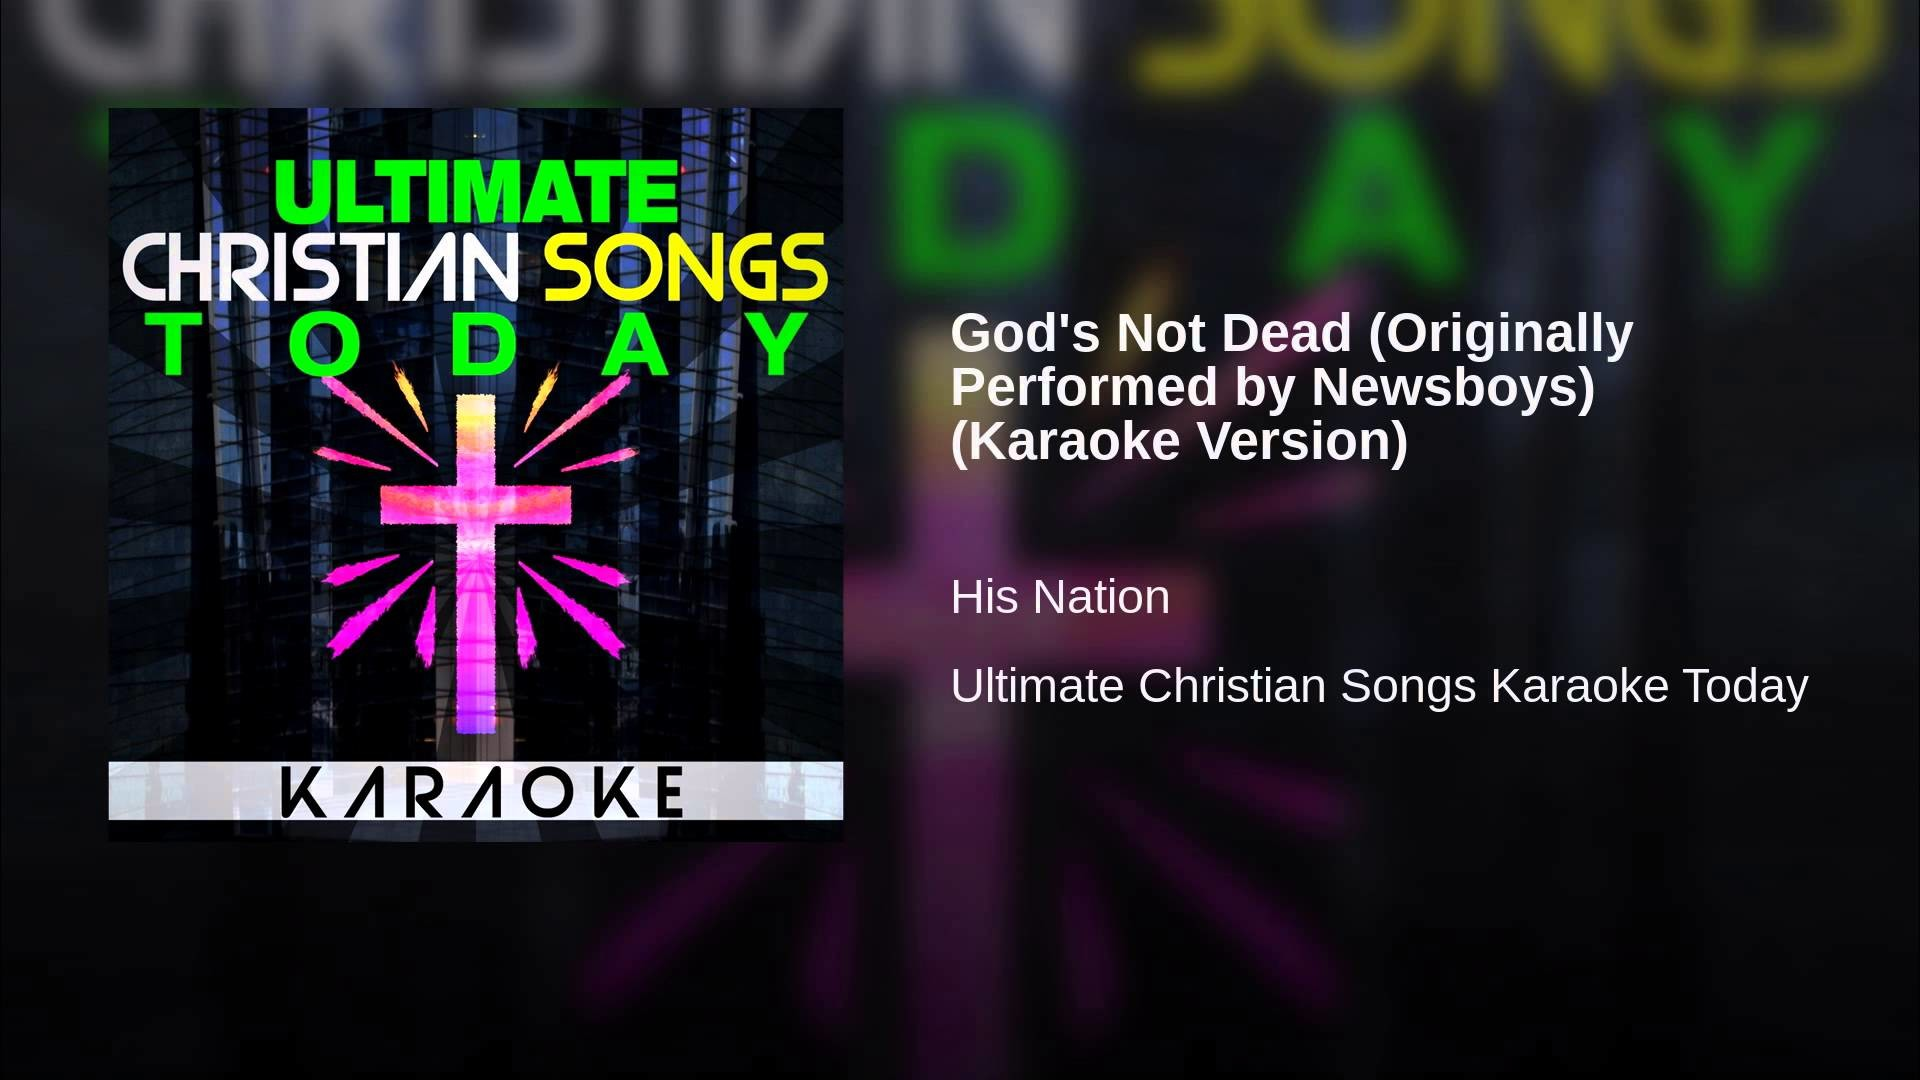 1920x1080 God's Not Dead (Originally Performed by Newsboys) (Karaoke Version)